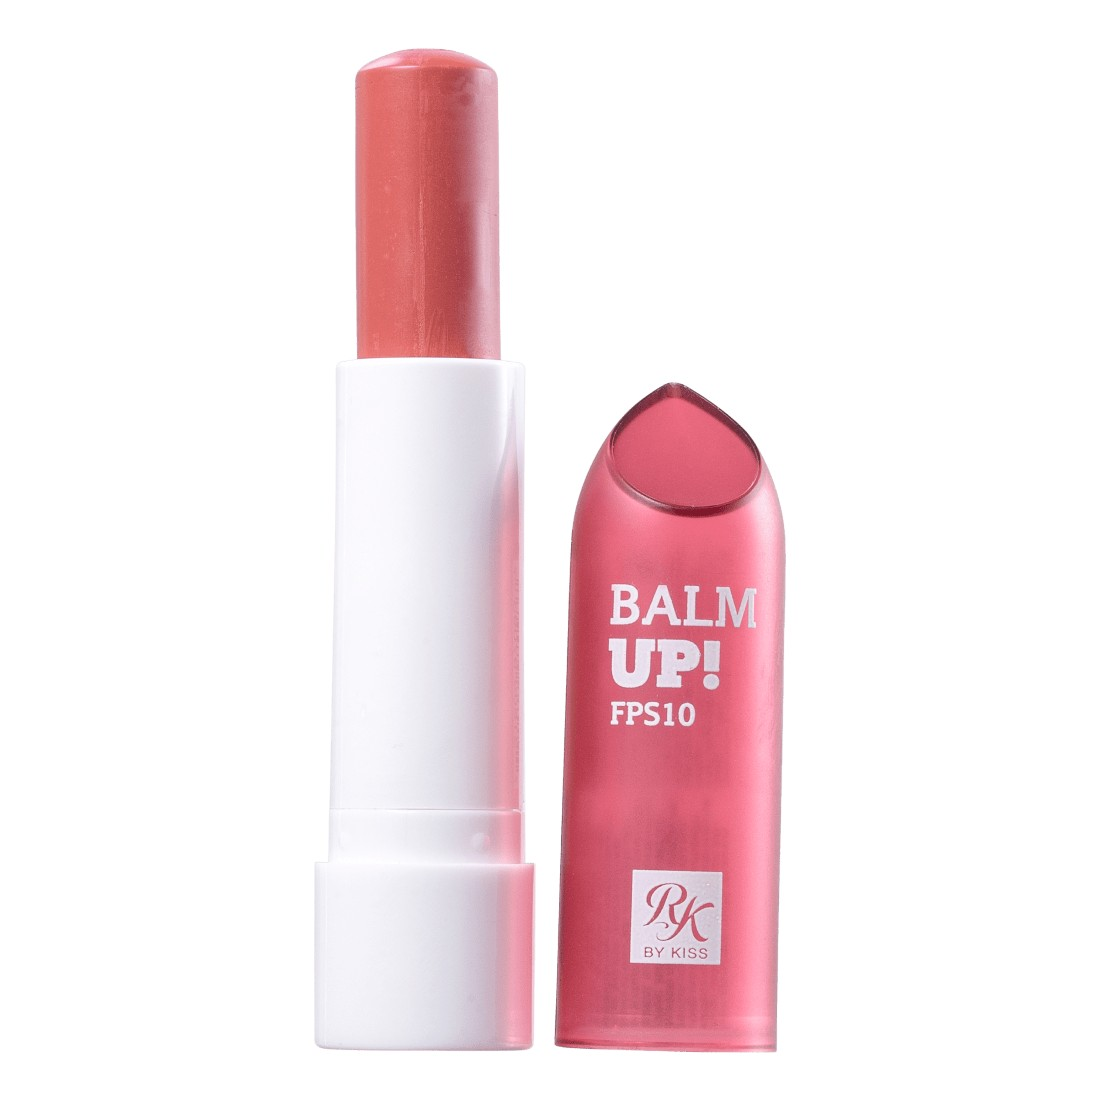 Protetor labial Balm UP! FPS10 RK by Kiss - get up